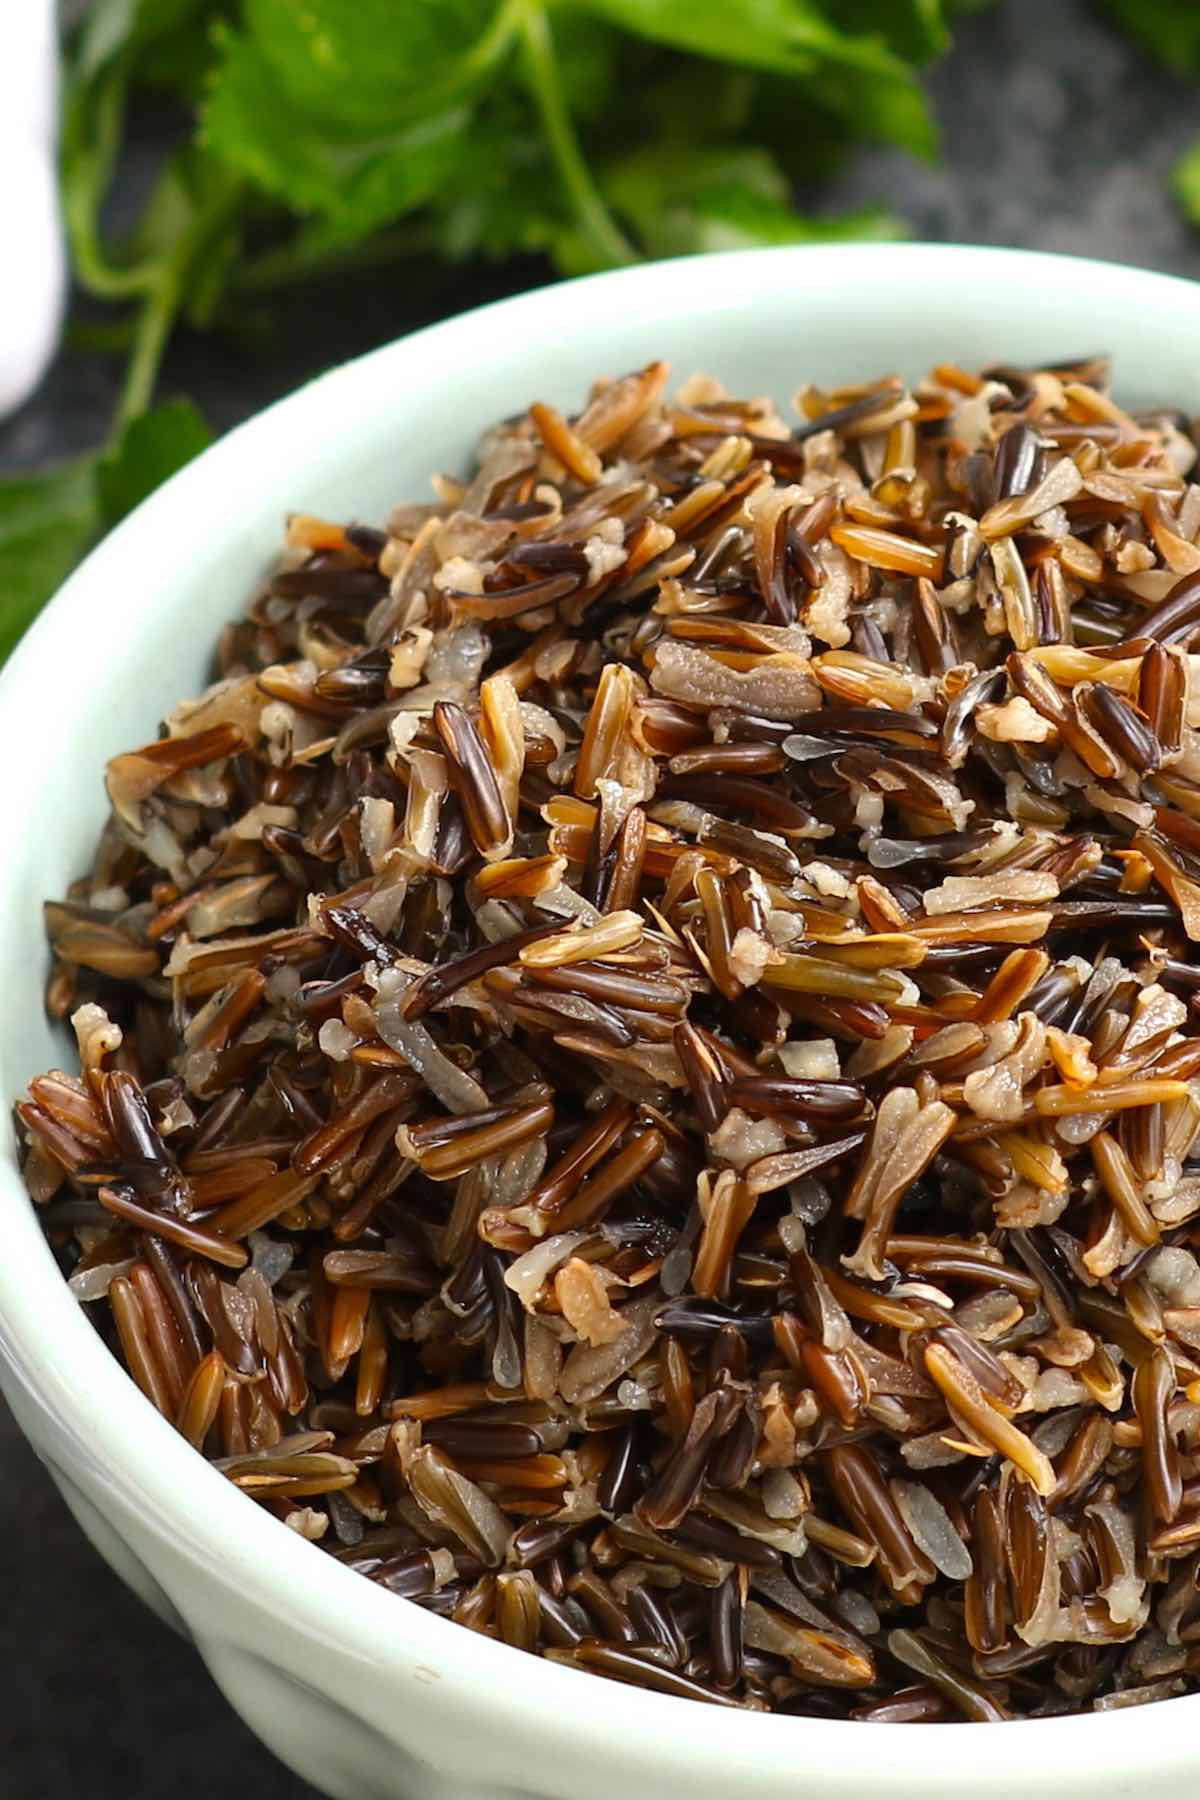 Perfectly cooked wild rice in a serving bowl showing its fluffy, chewy texture and walnut color